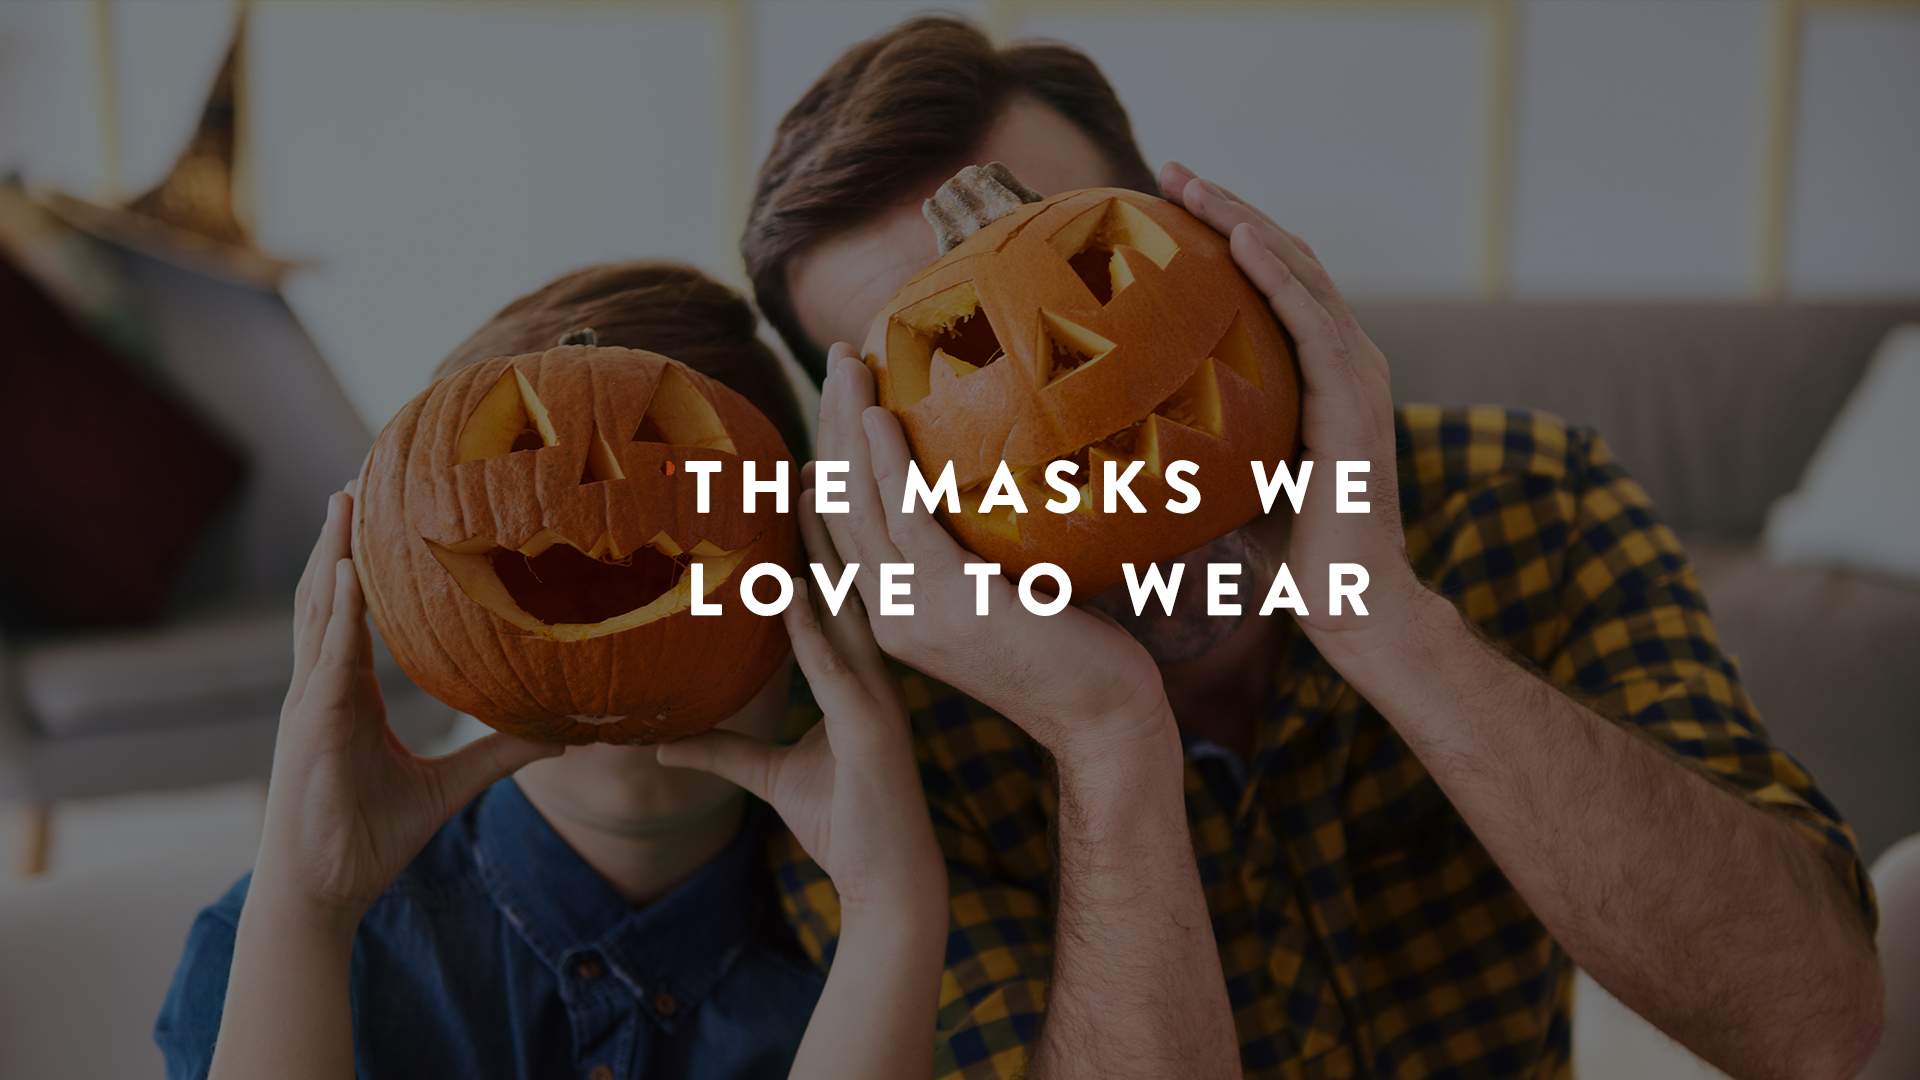 the masks we love to wear